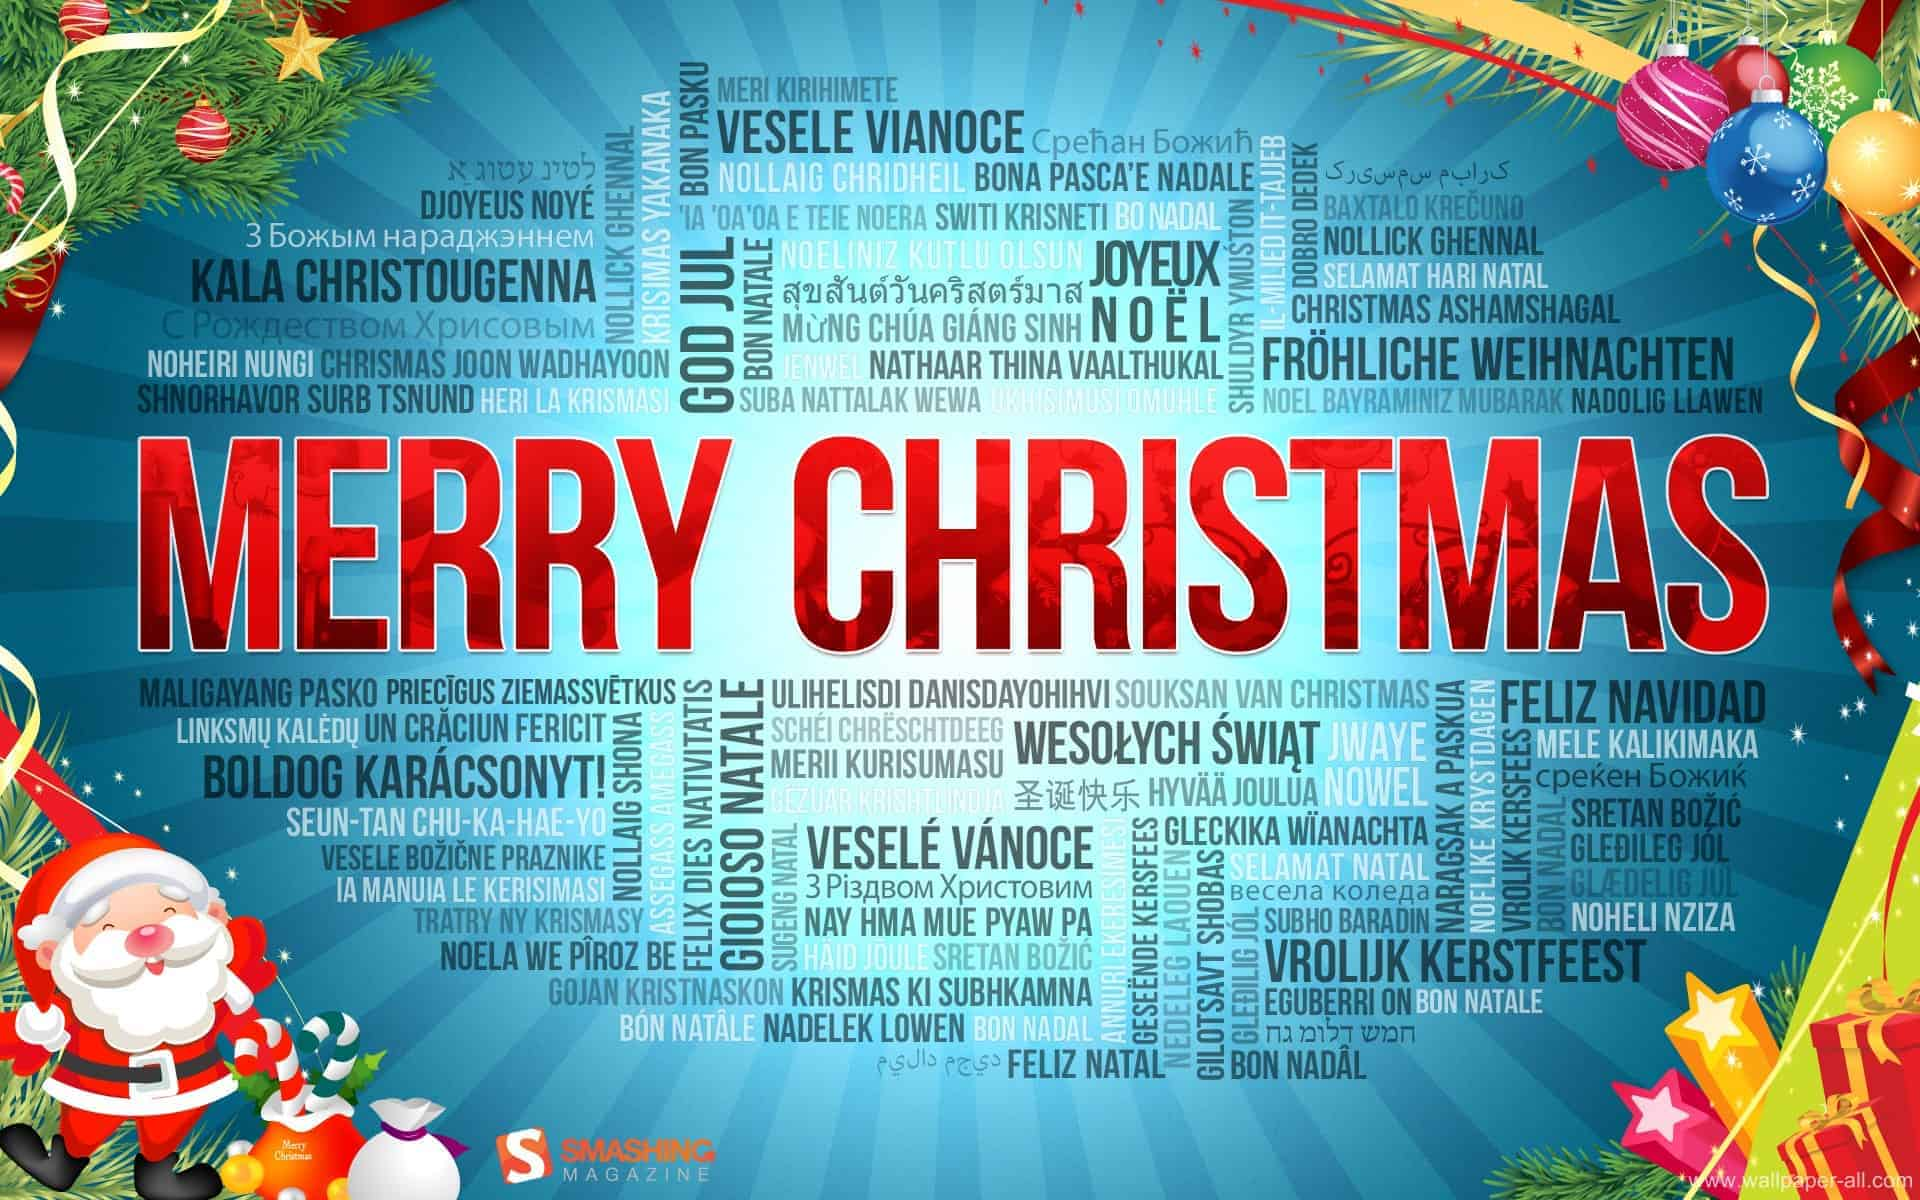 merry christmas and happy new year in many languages december 20 2013 804 am